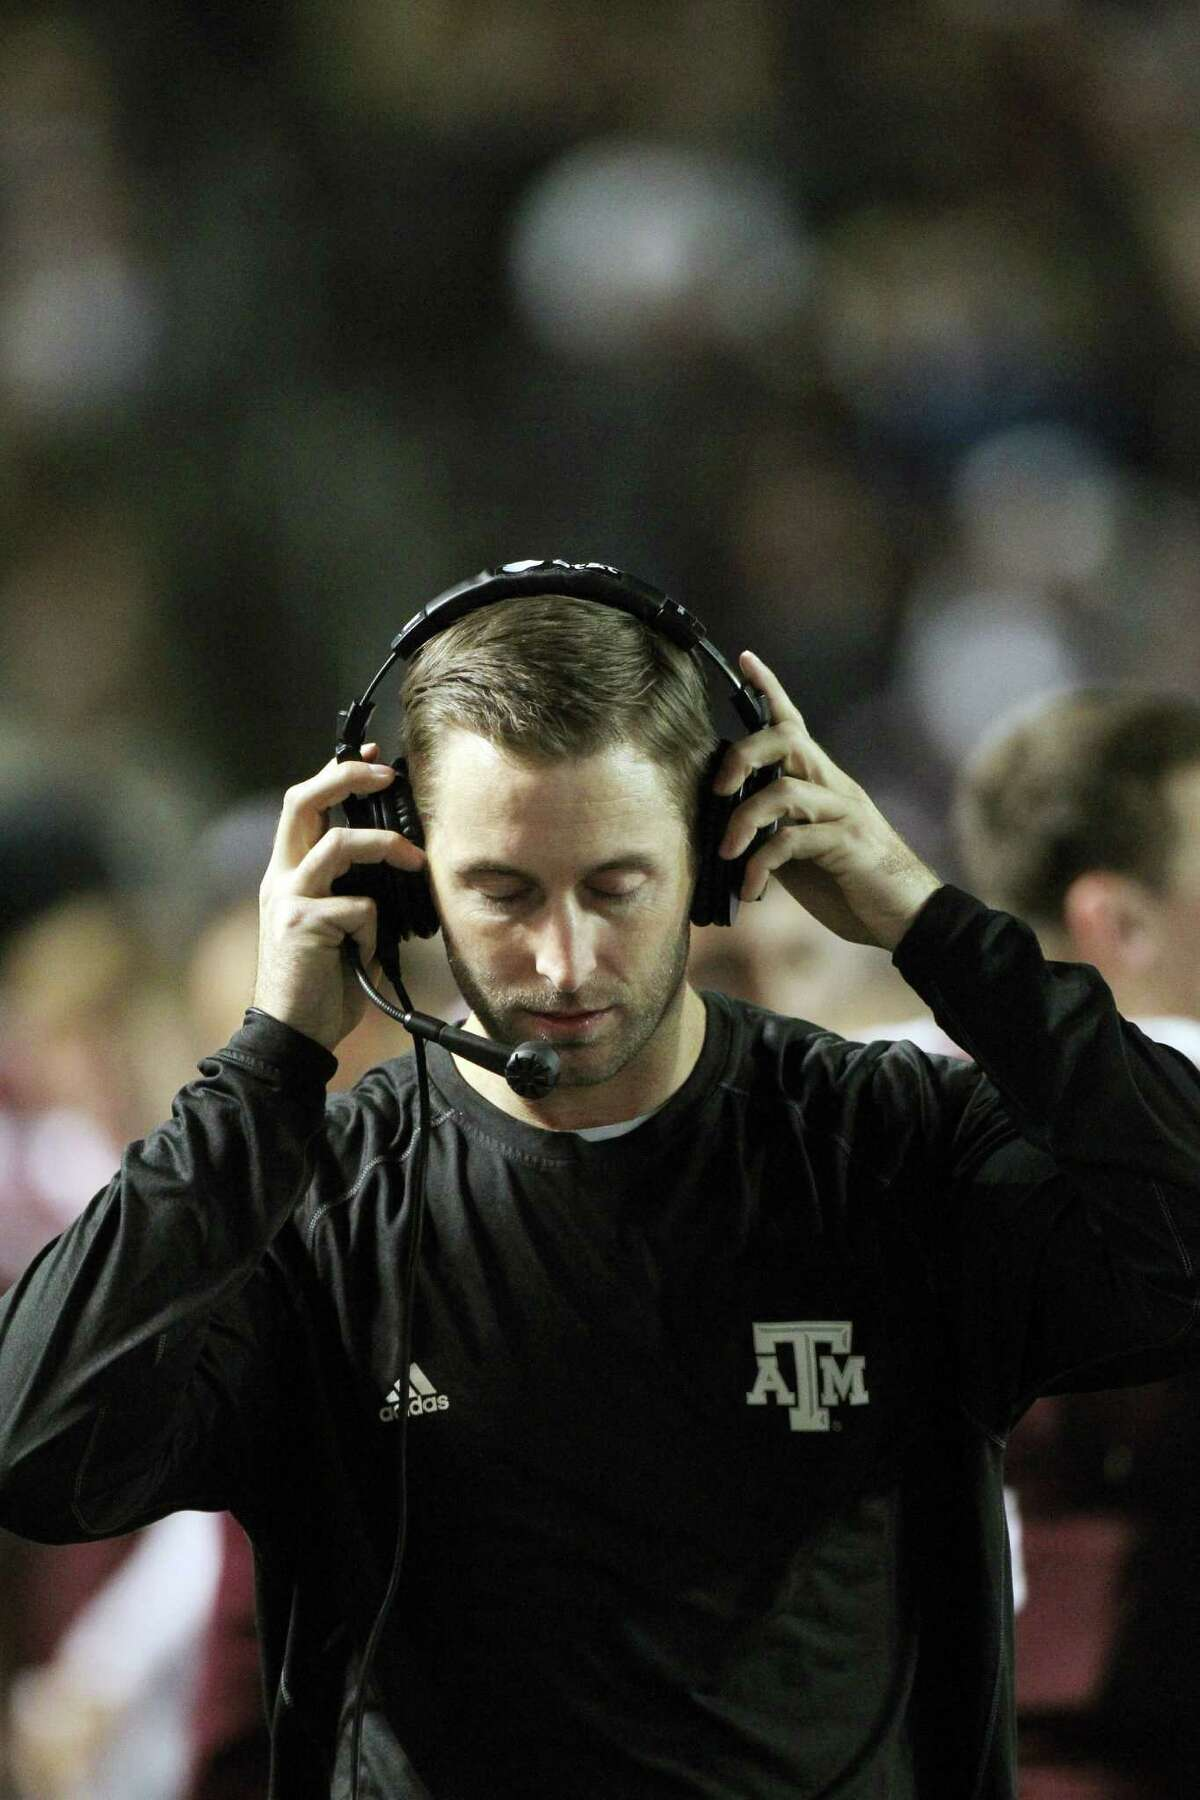 Texas A&M offensive coordinator Kliff Kingsbury adjusts his headset as he paces the sidelines against Missouri during an NCAA football game, Saturday, Nov. 24, 2012, in Kyle Field in College Station.